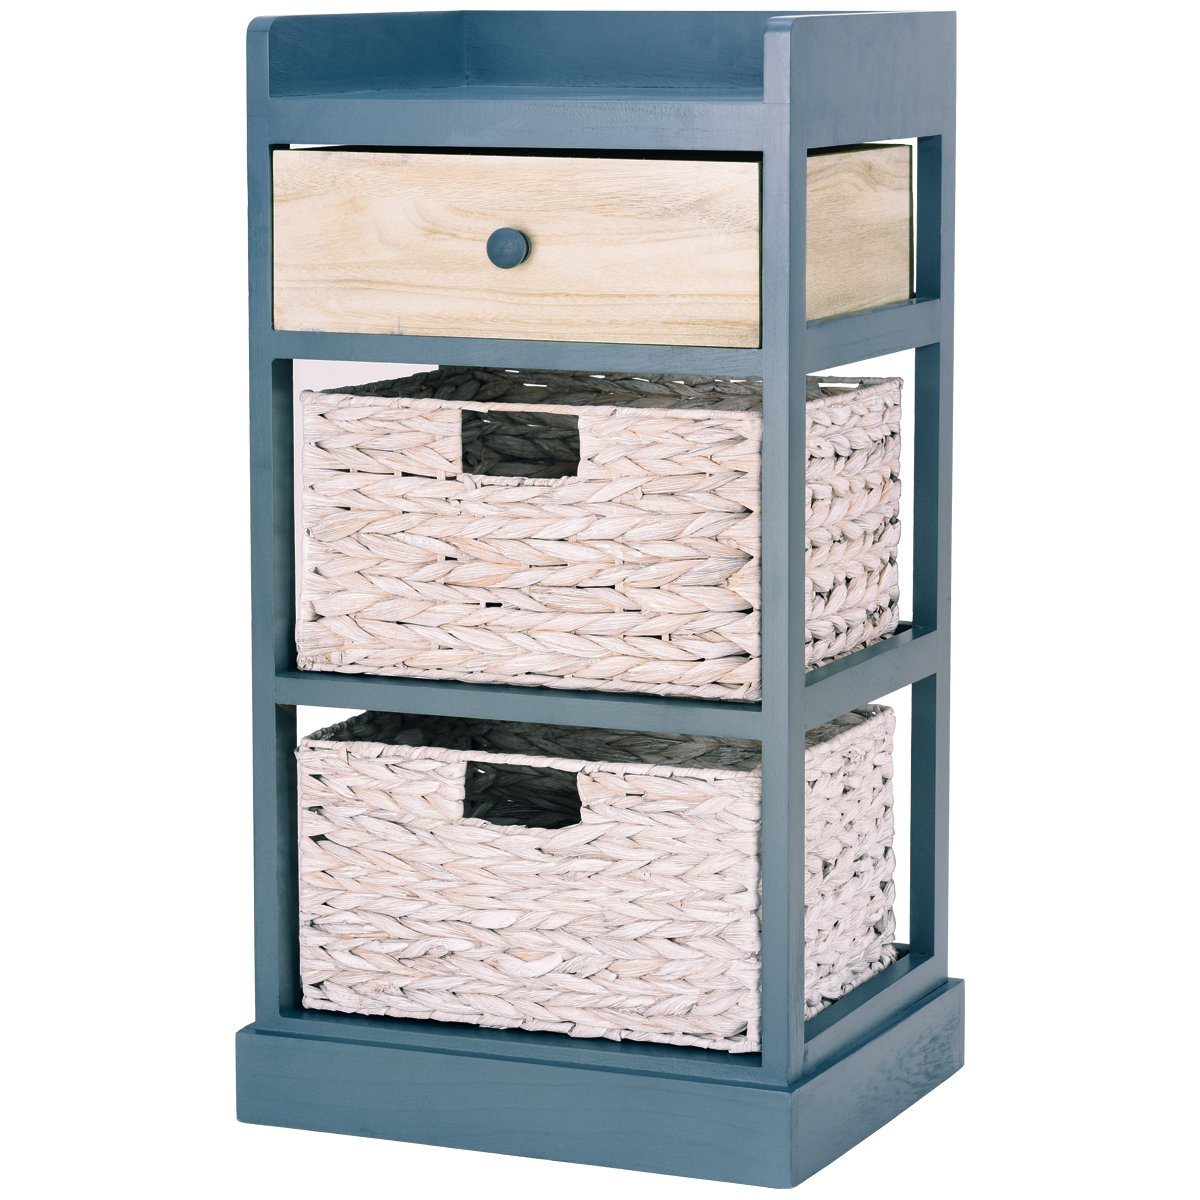 giantex end table drawers and baskets beside awl accent with nightstand wood drawer cabinet home office collection solid storage organizer wooden shelving units pier one furniture